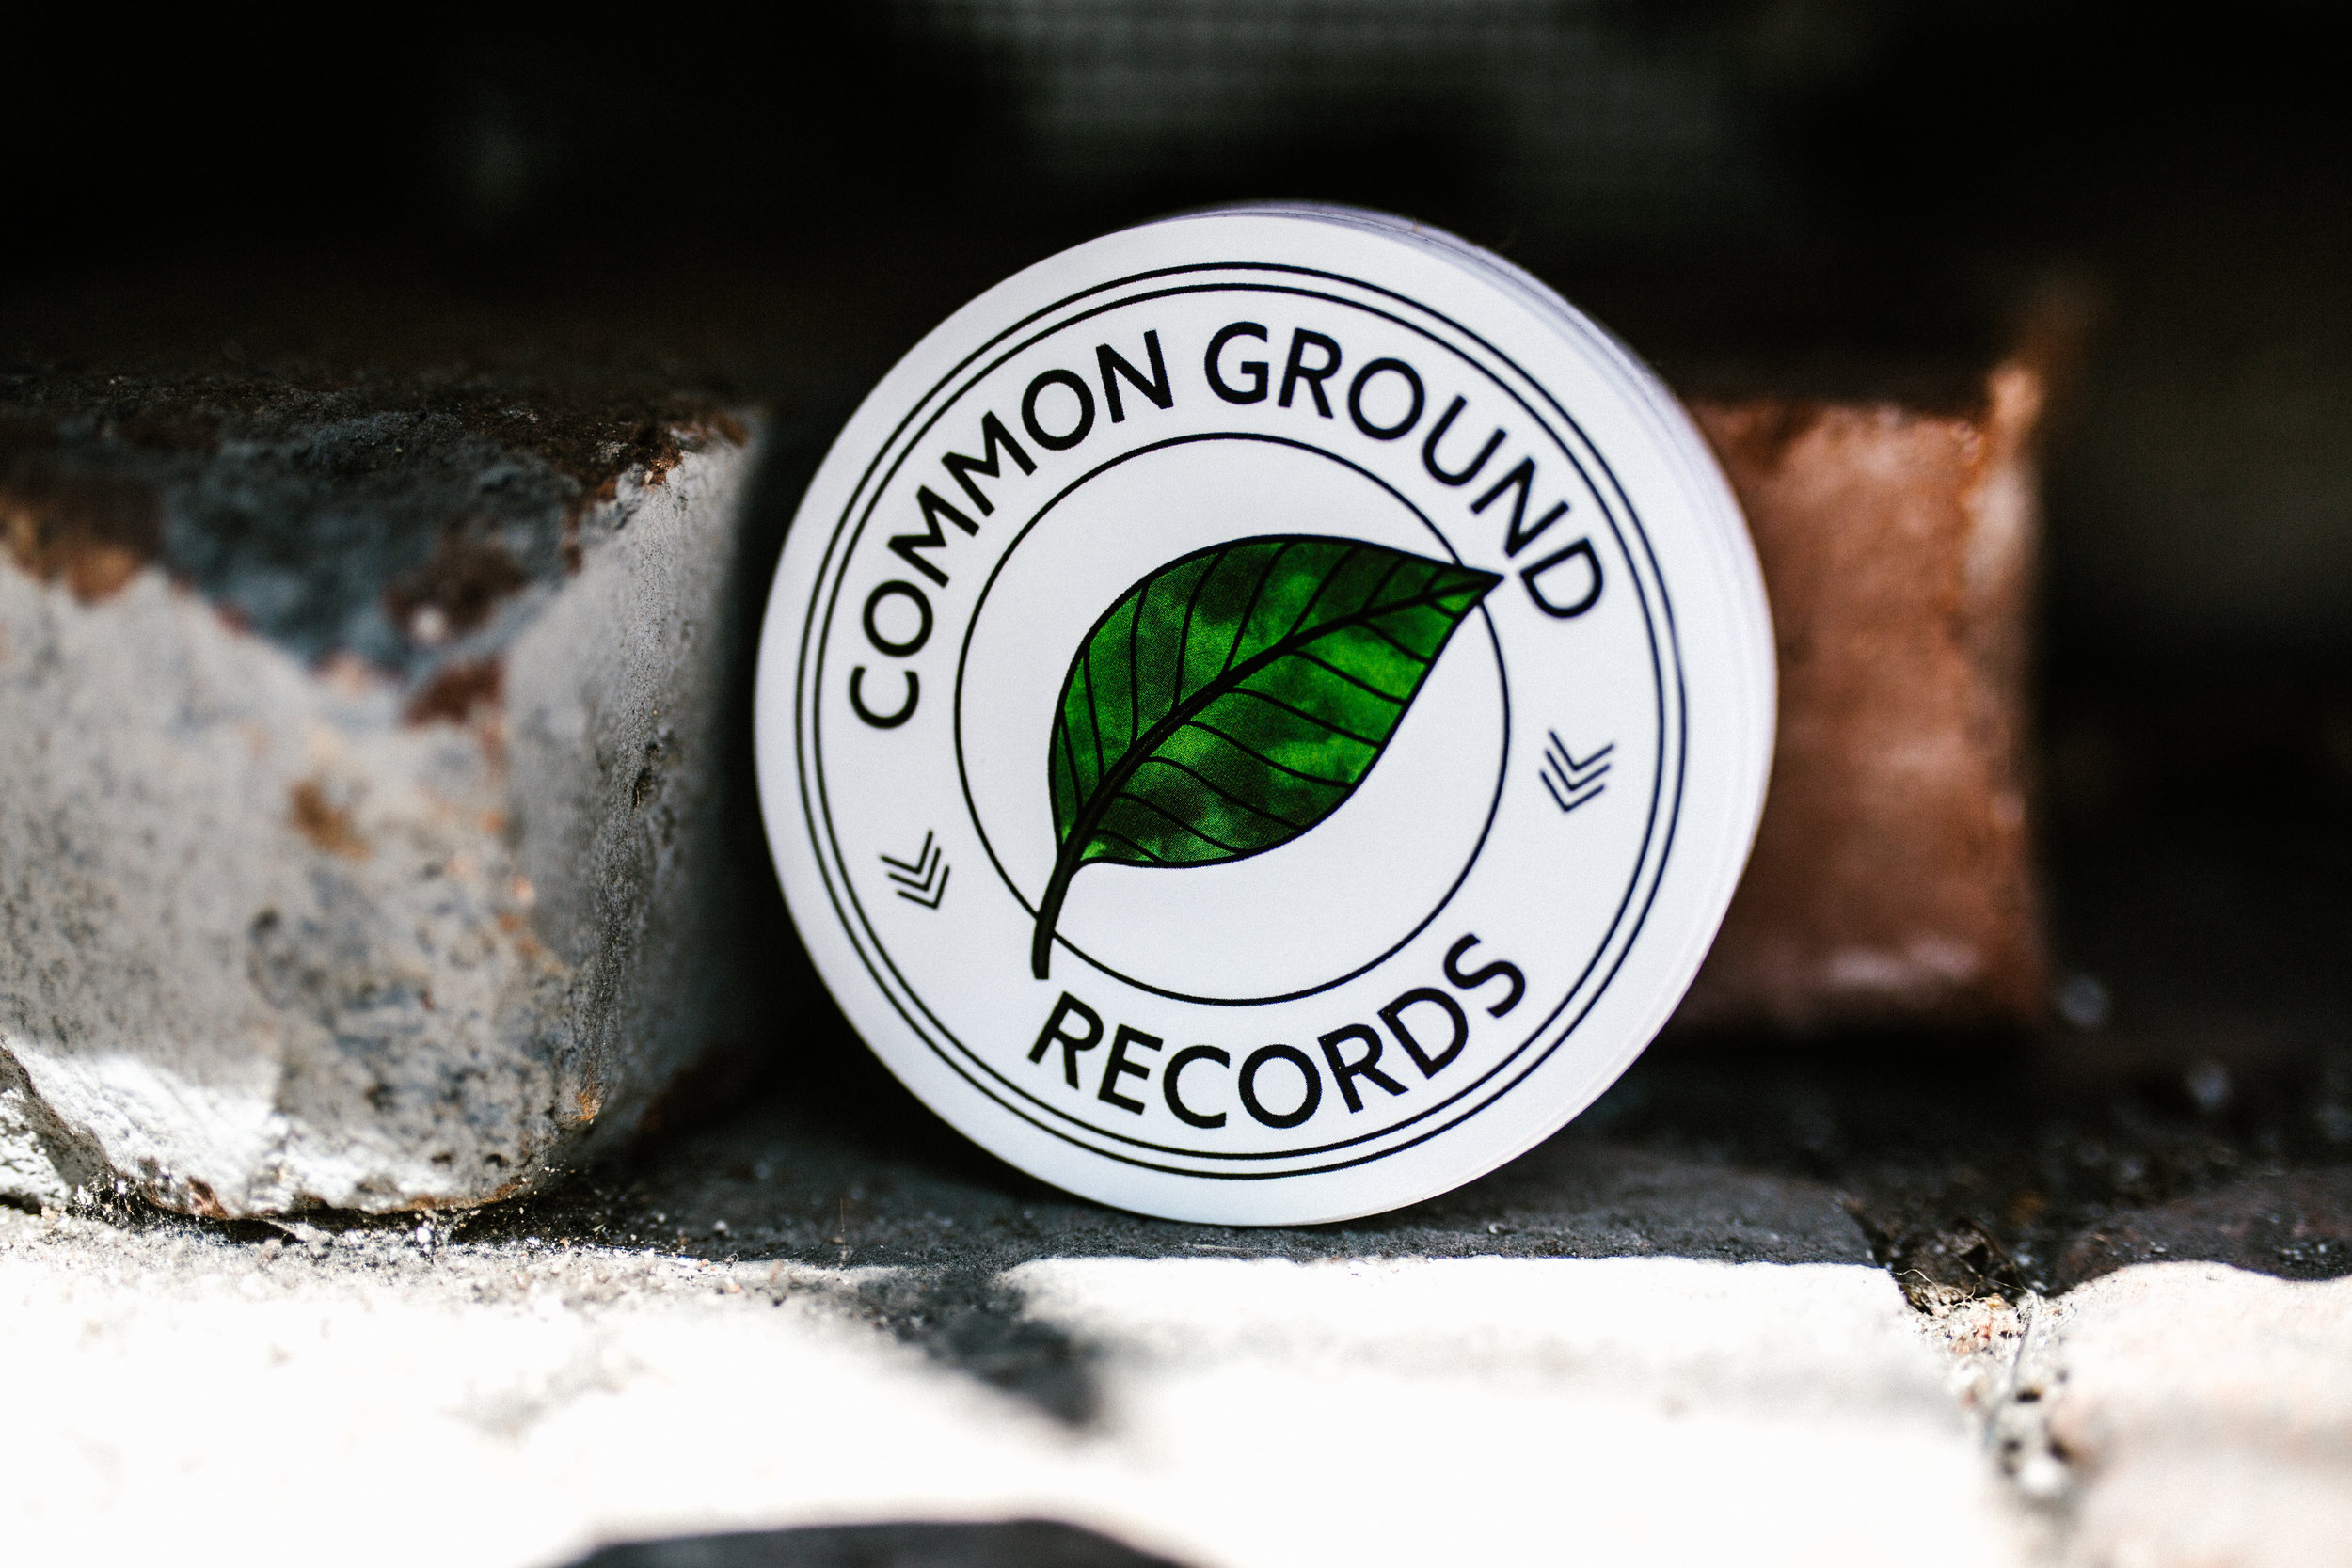 COMMON GROUND LOGO STICKER - $0.50